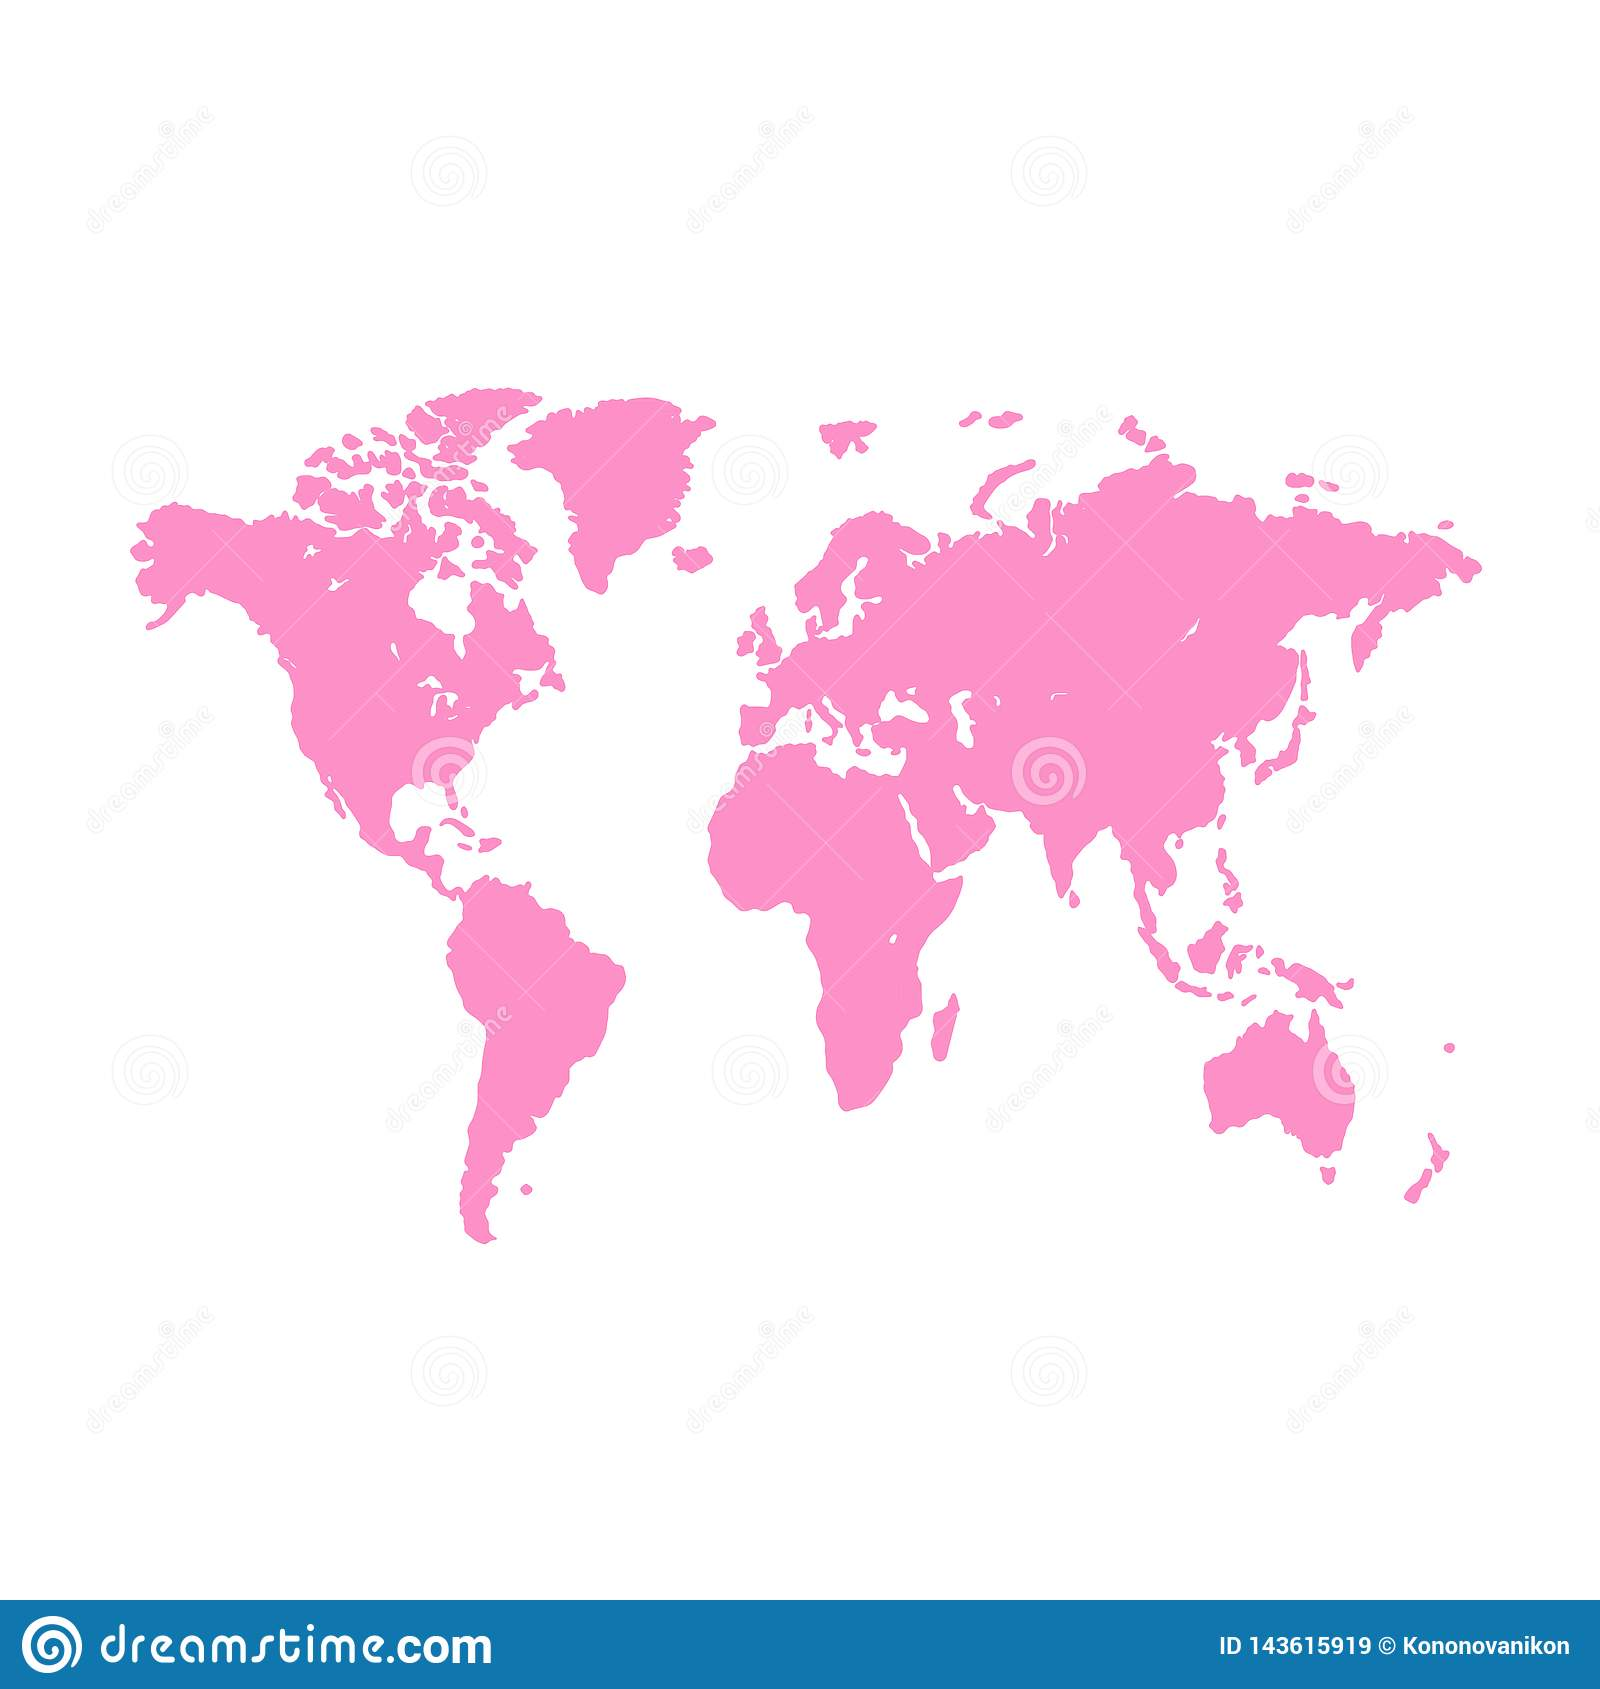 World map background. Grunge illustration of silhouettes world map. Pink blank vector world map